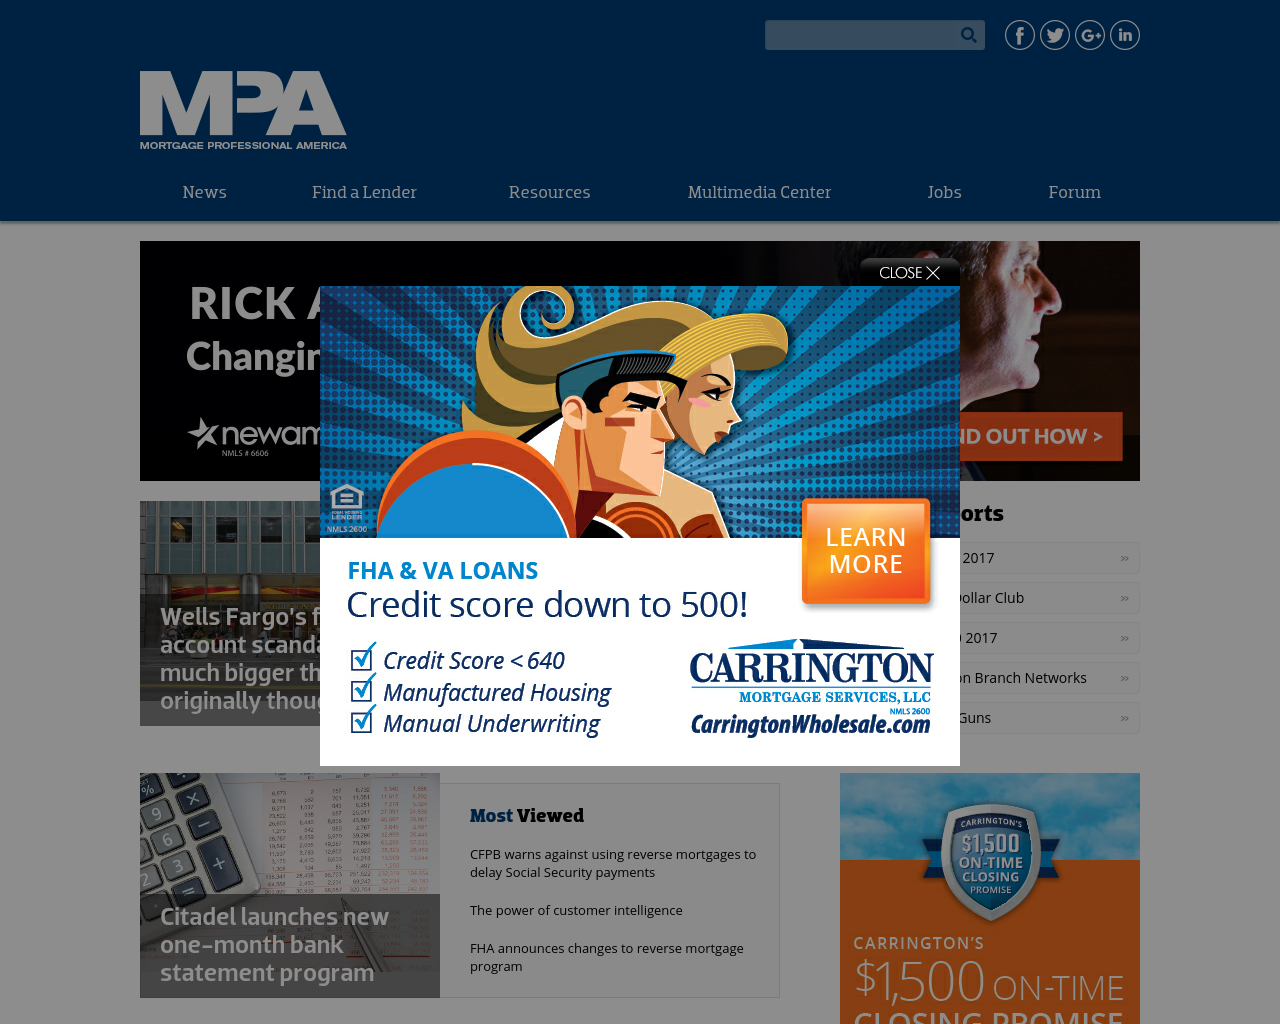 MPA---Mortrage-Professional-America-Advertising-Reviews-Pricing